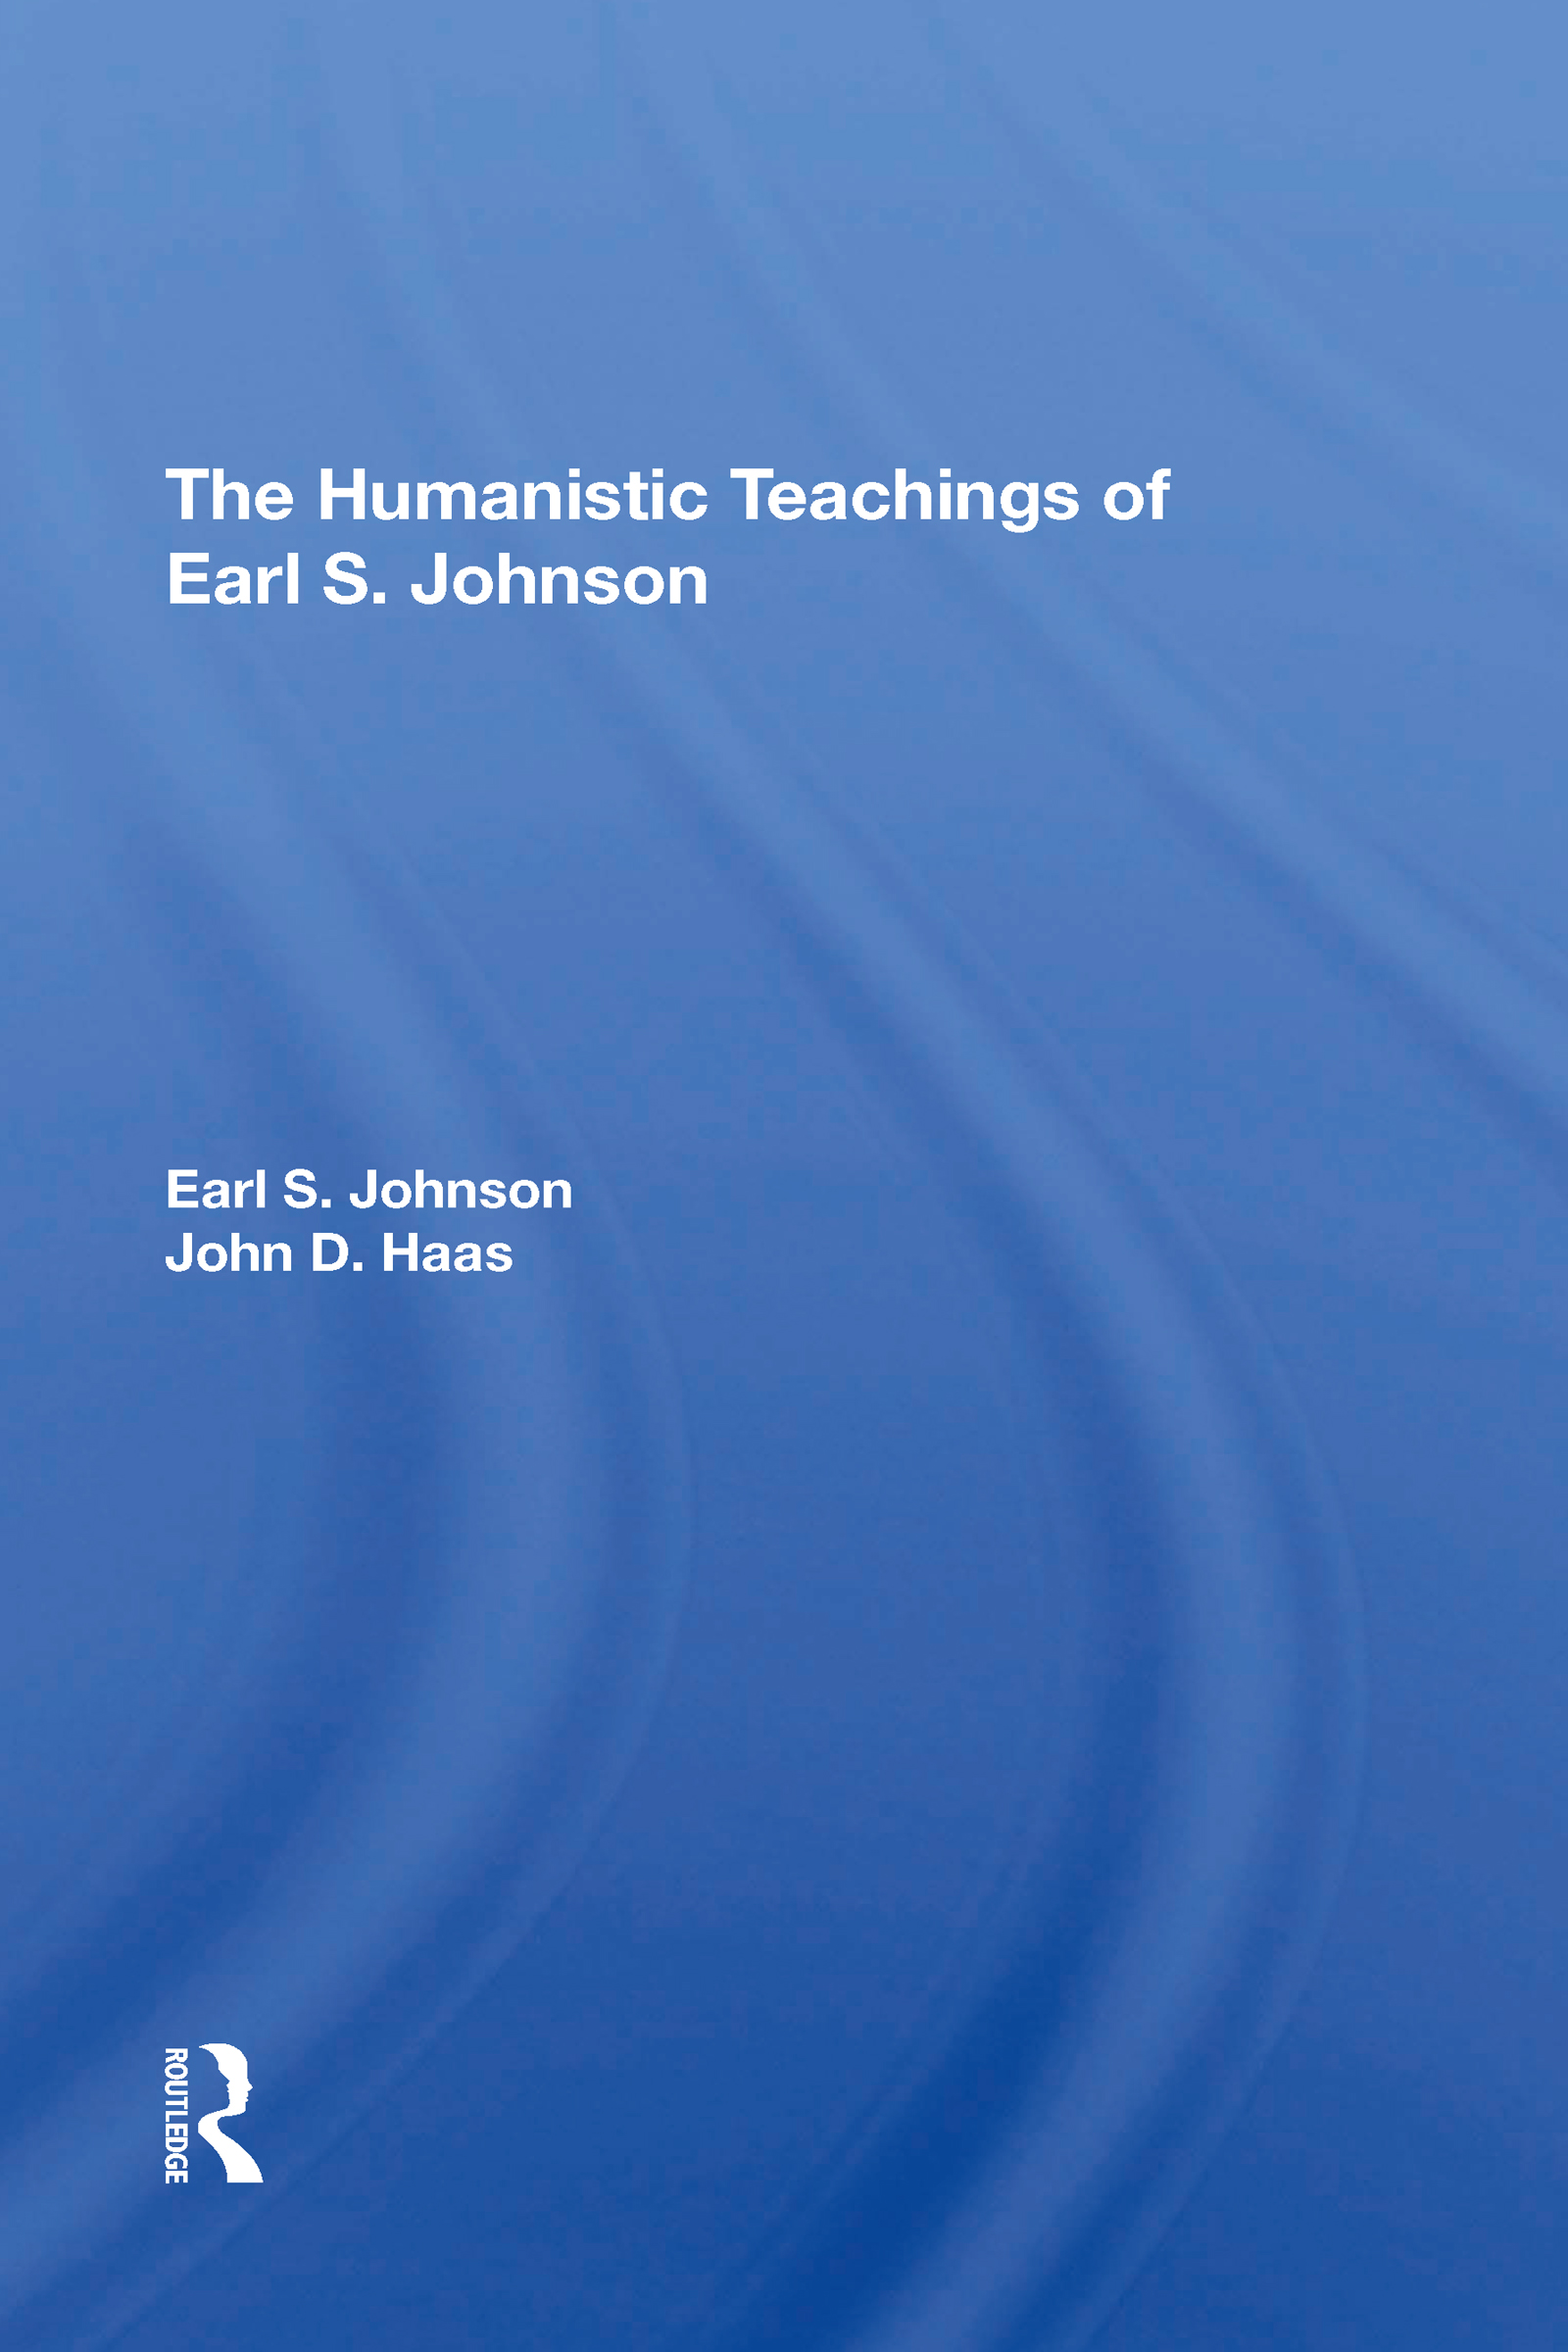 The Humanistic Teachings Of Earl S. Johnson